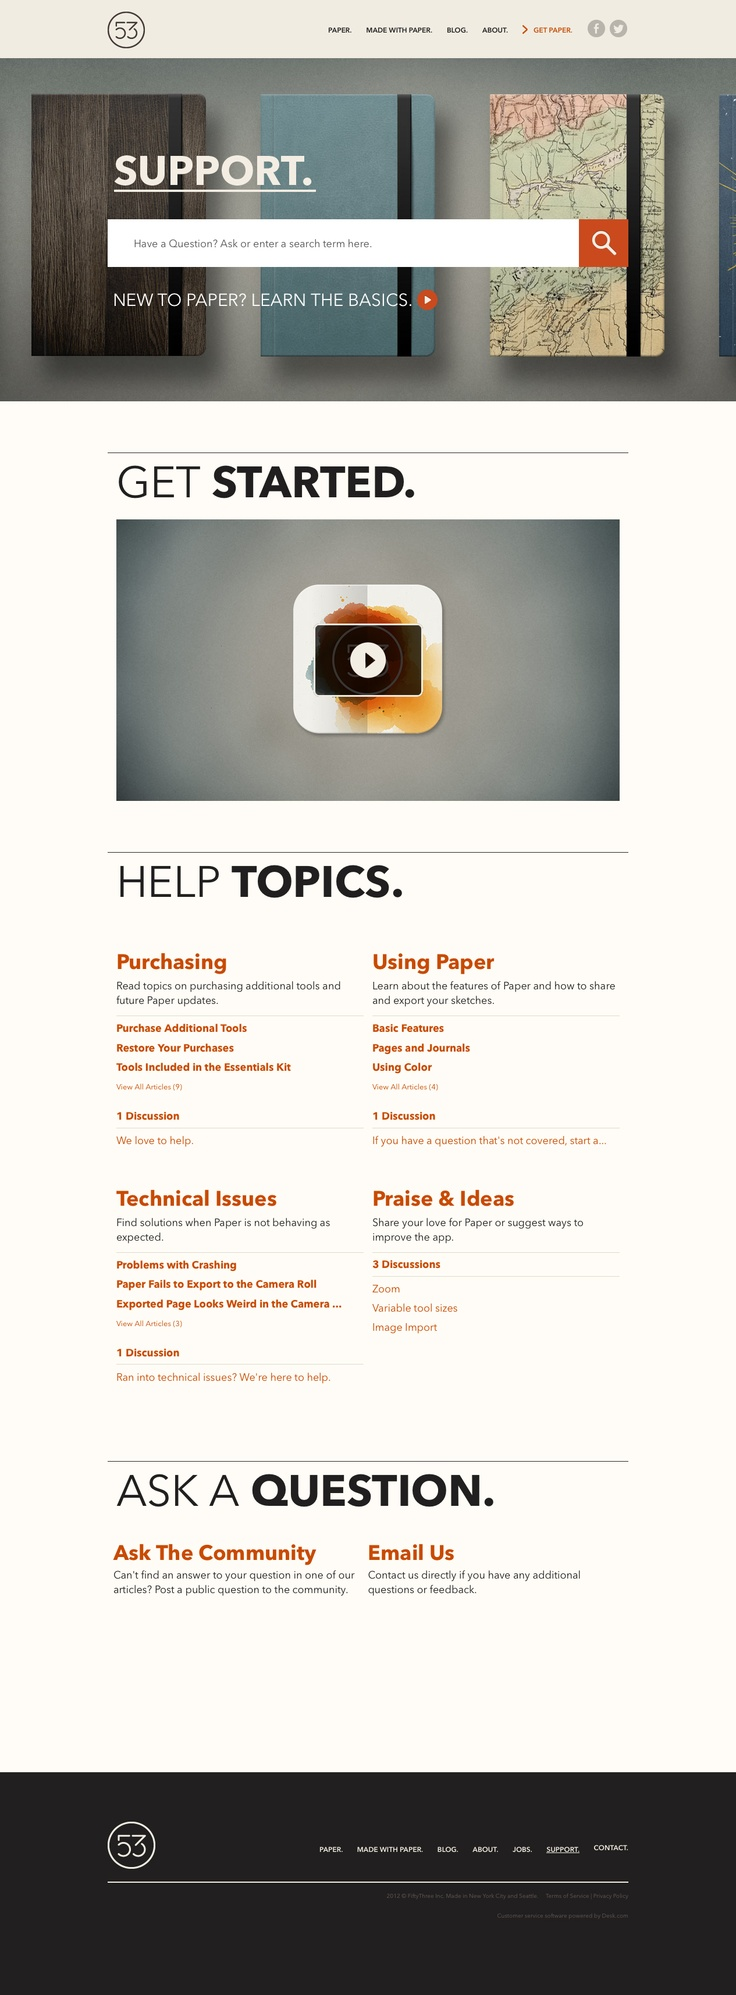 FiftyThree | Support website